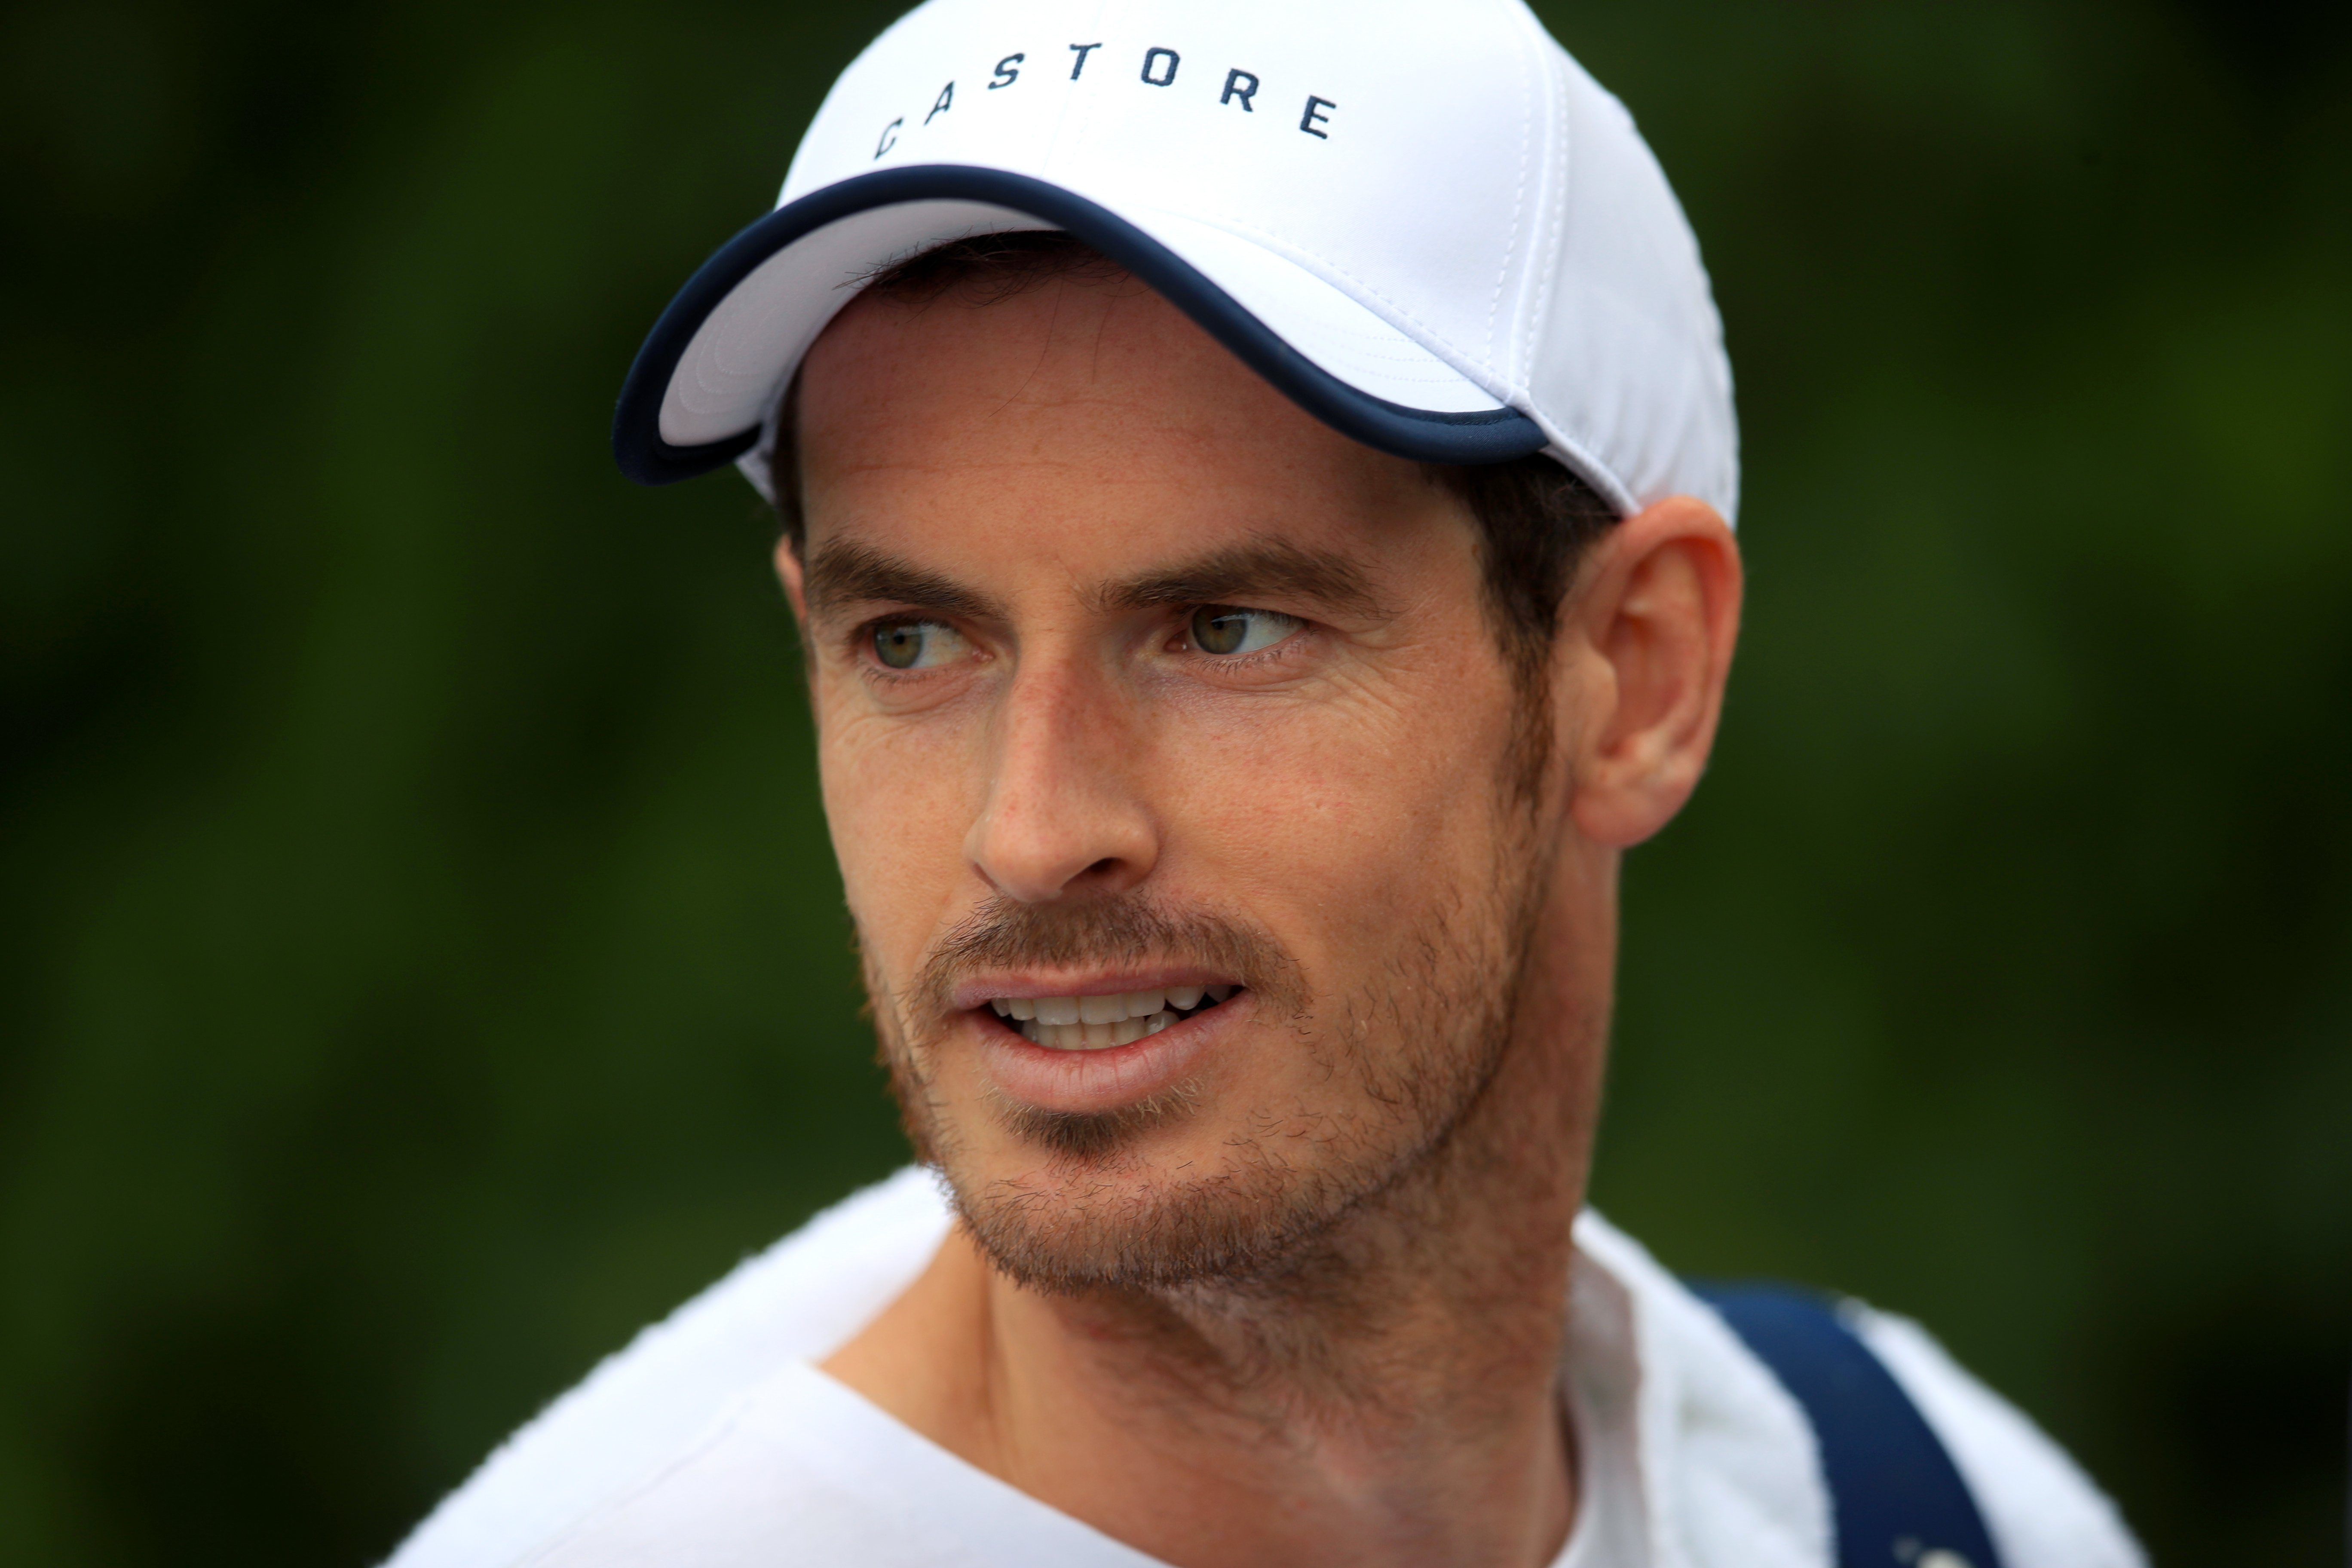 Andy Murray 'gutted' as he drops out of Australian Open due to quarantine obstacles